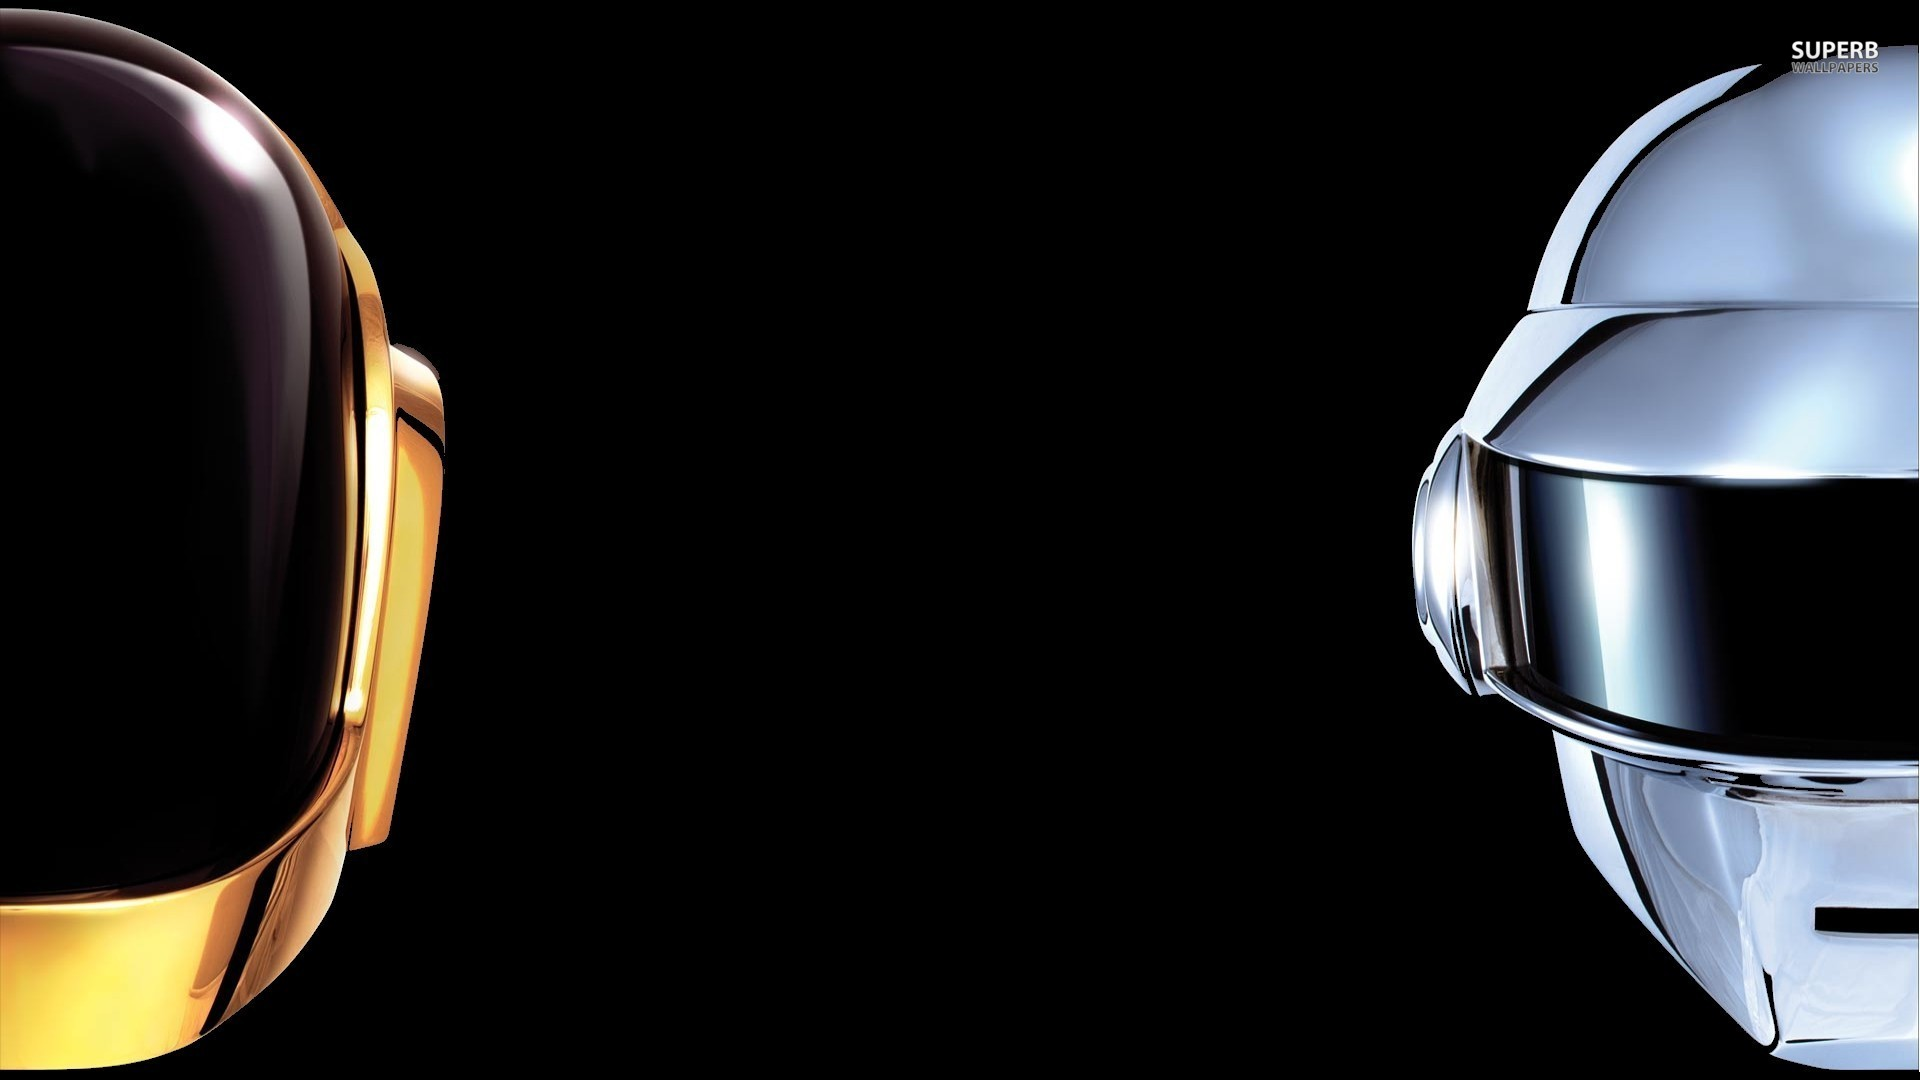 Daft Punk wallpaper 1920x1080 jpg